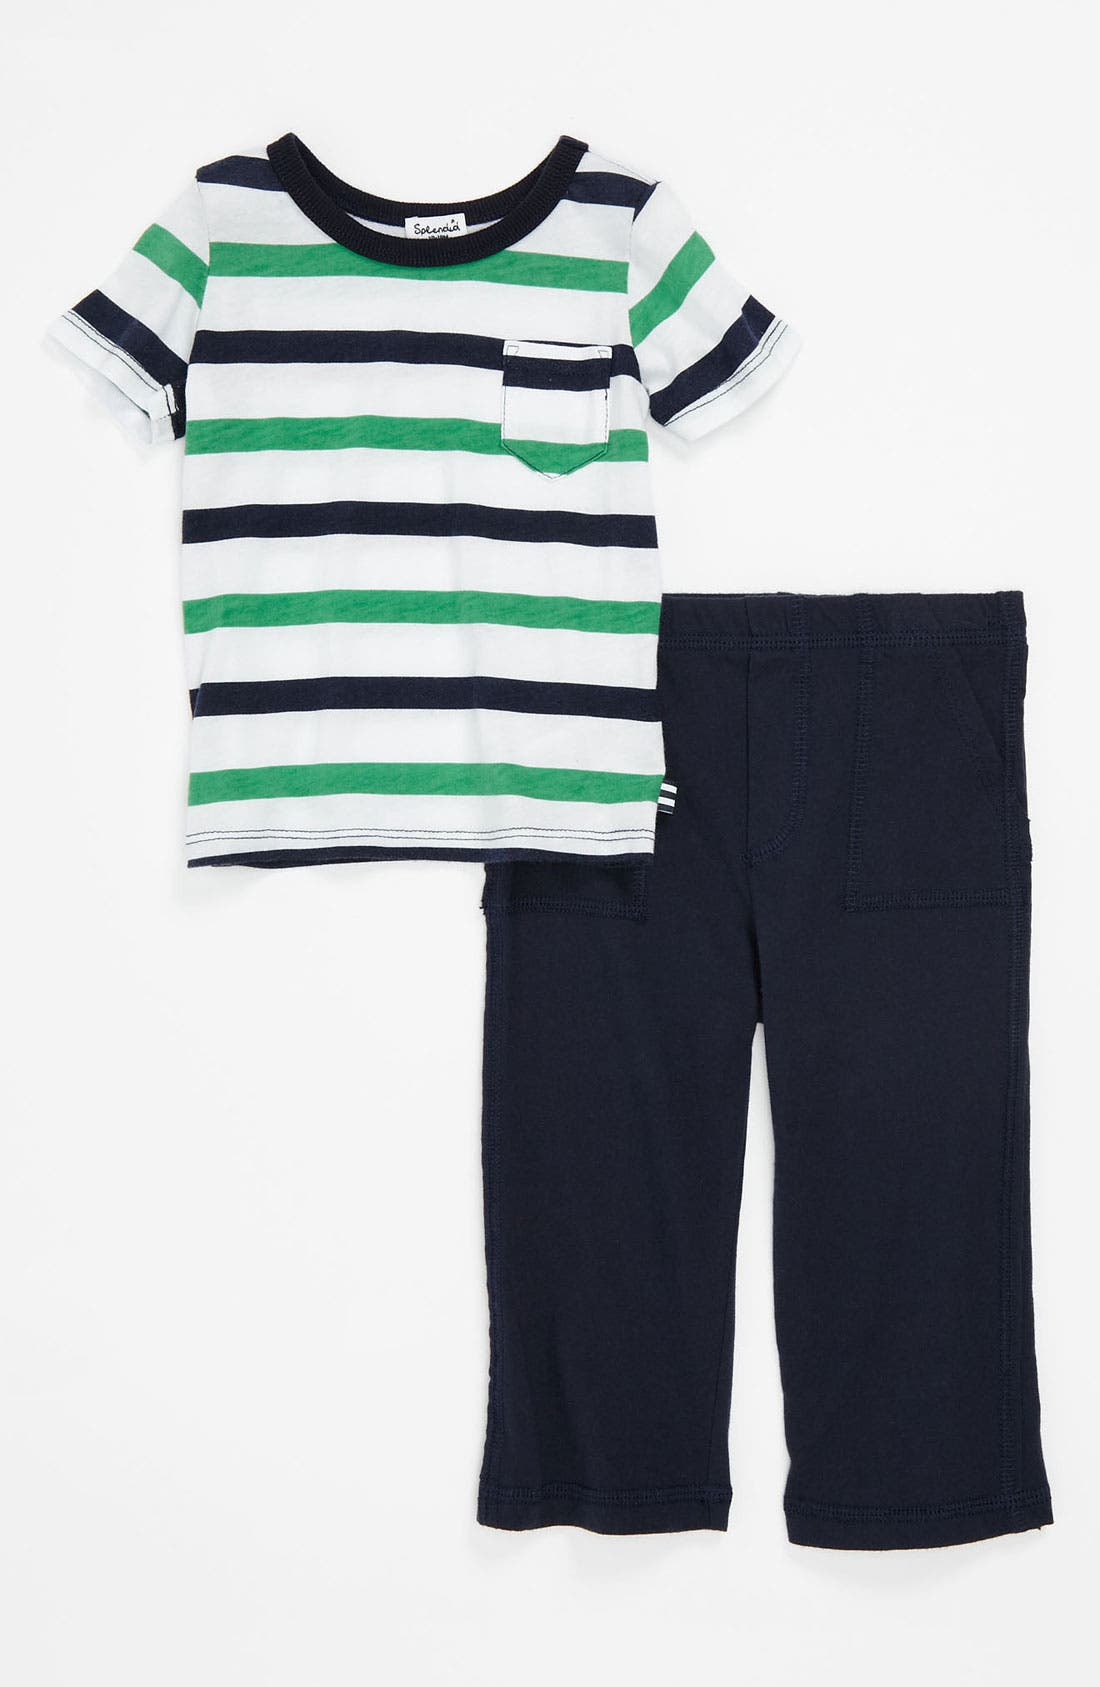 Main Image - Splendid Stripe Top & Knit Pants (Toddler)